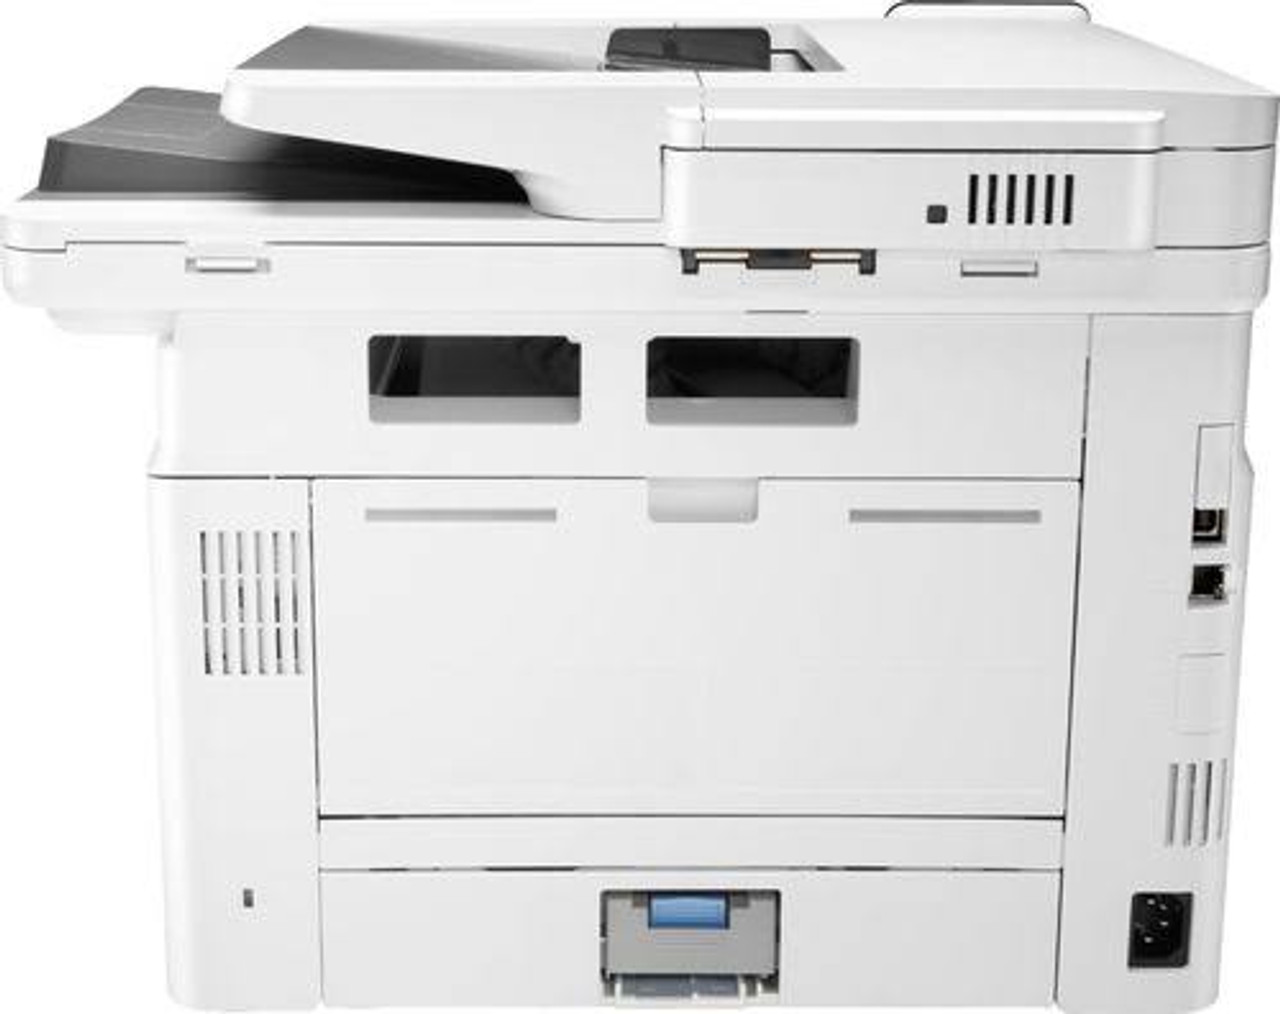 HP - LaserJet Pro MFP M428fdw Black-and-white All-in-One Laser Printer - White